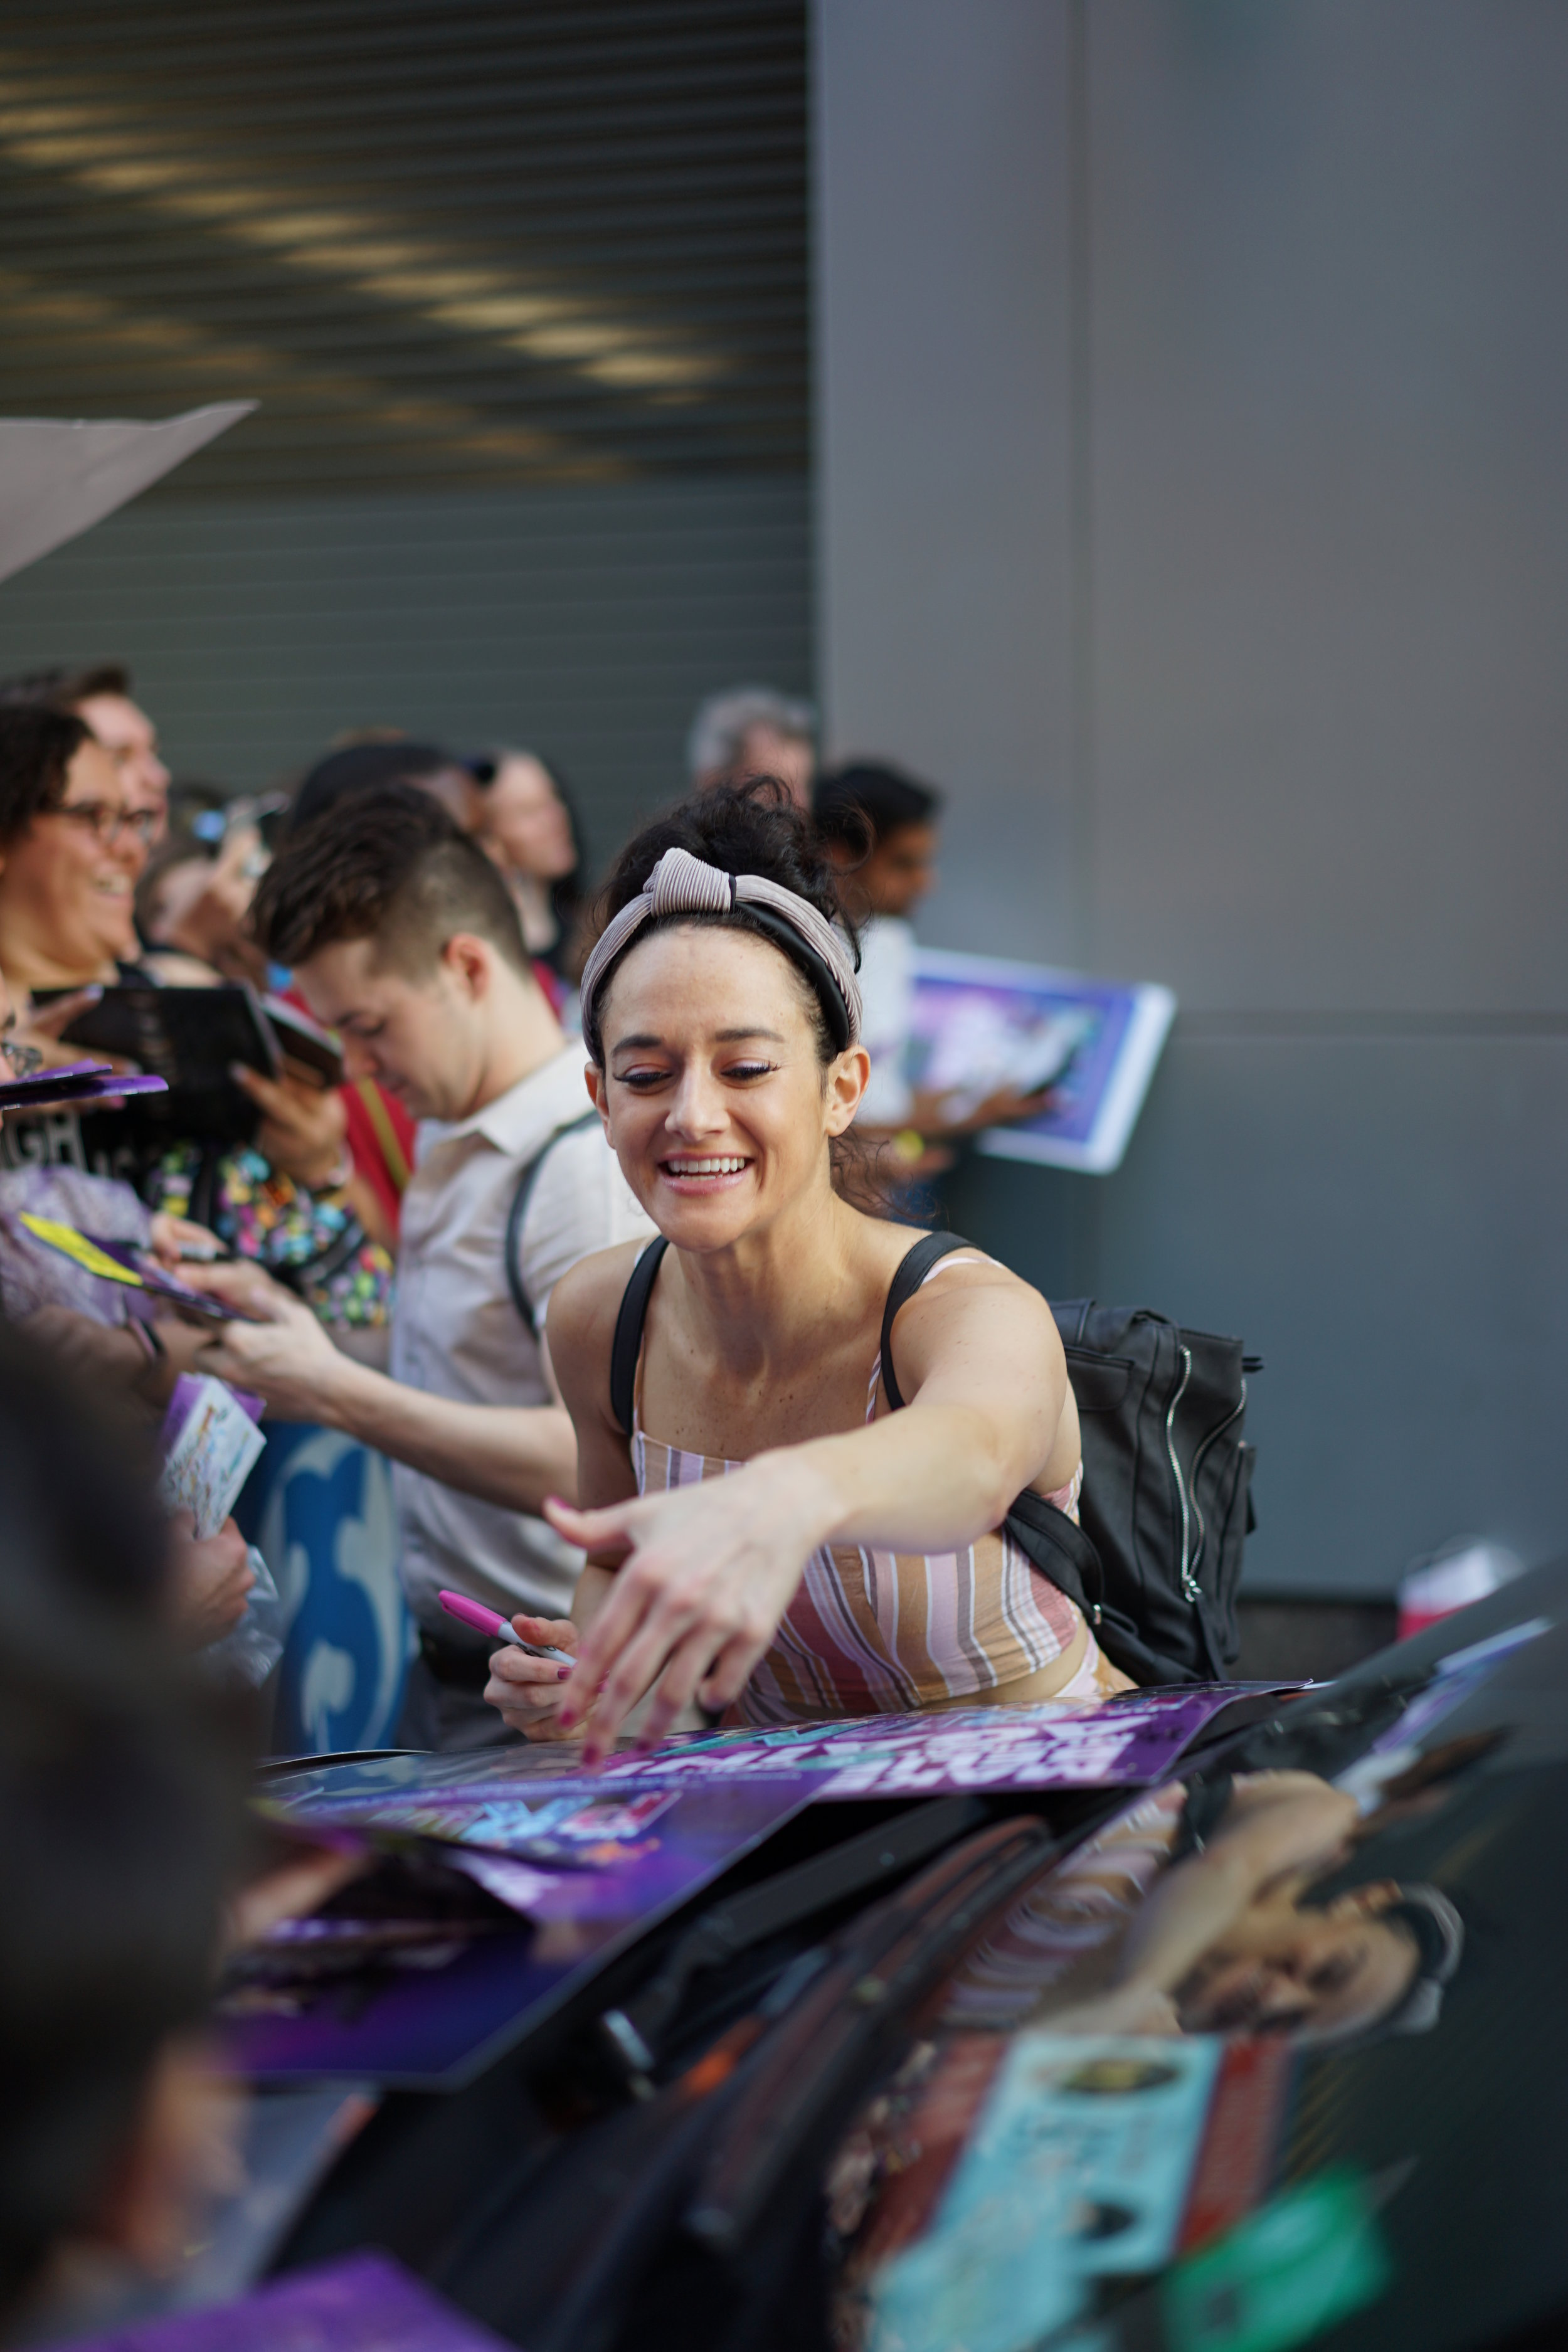 I managed to get it together for the final stage door. I think I was just relieved it was over!  Photo: Kate Yu @kateyu.sh